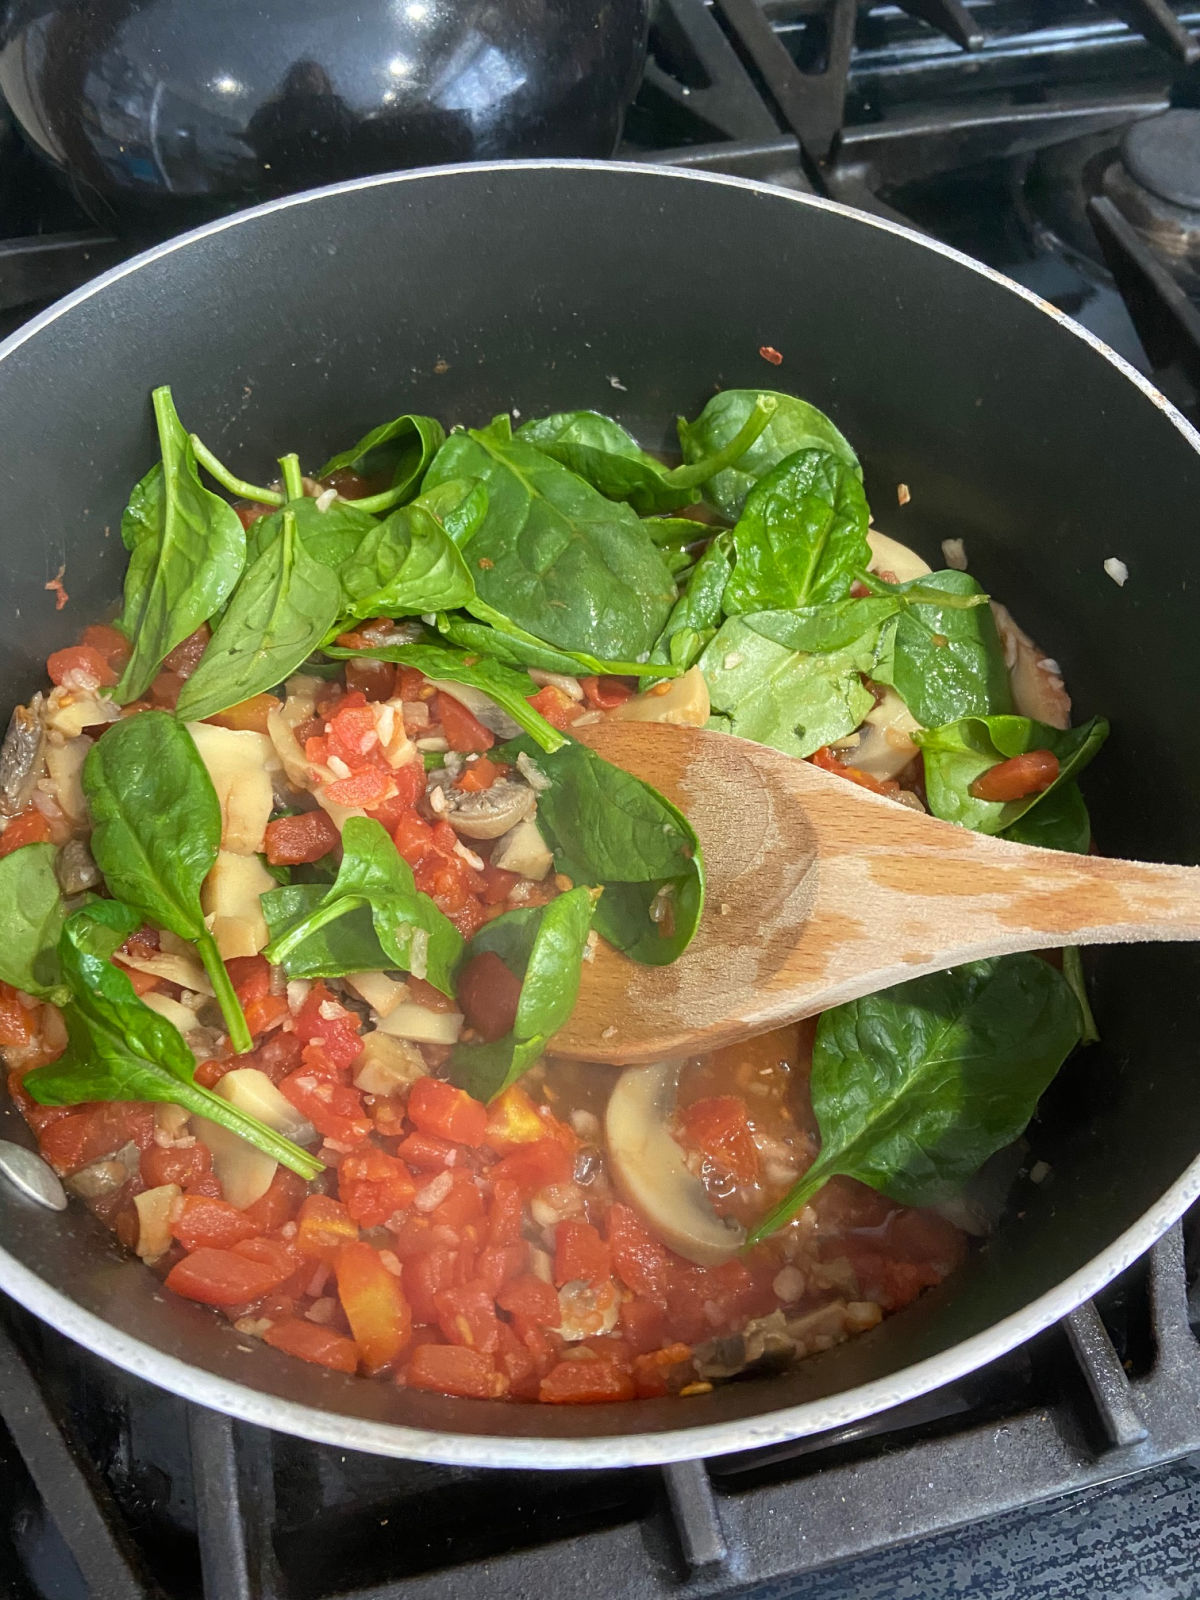 fresh spinach in a frying pan with tomatoes and mushrooms.